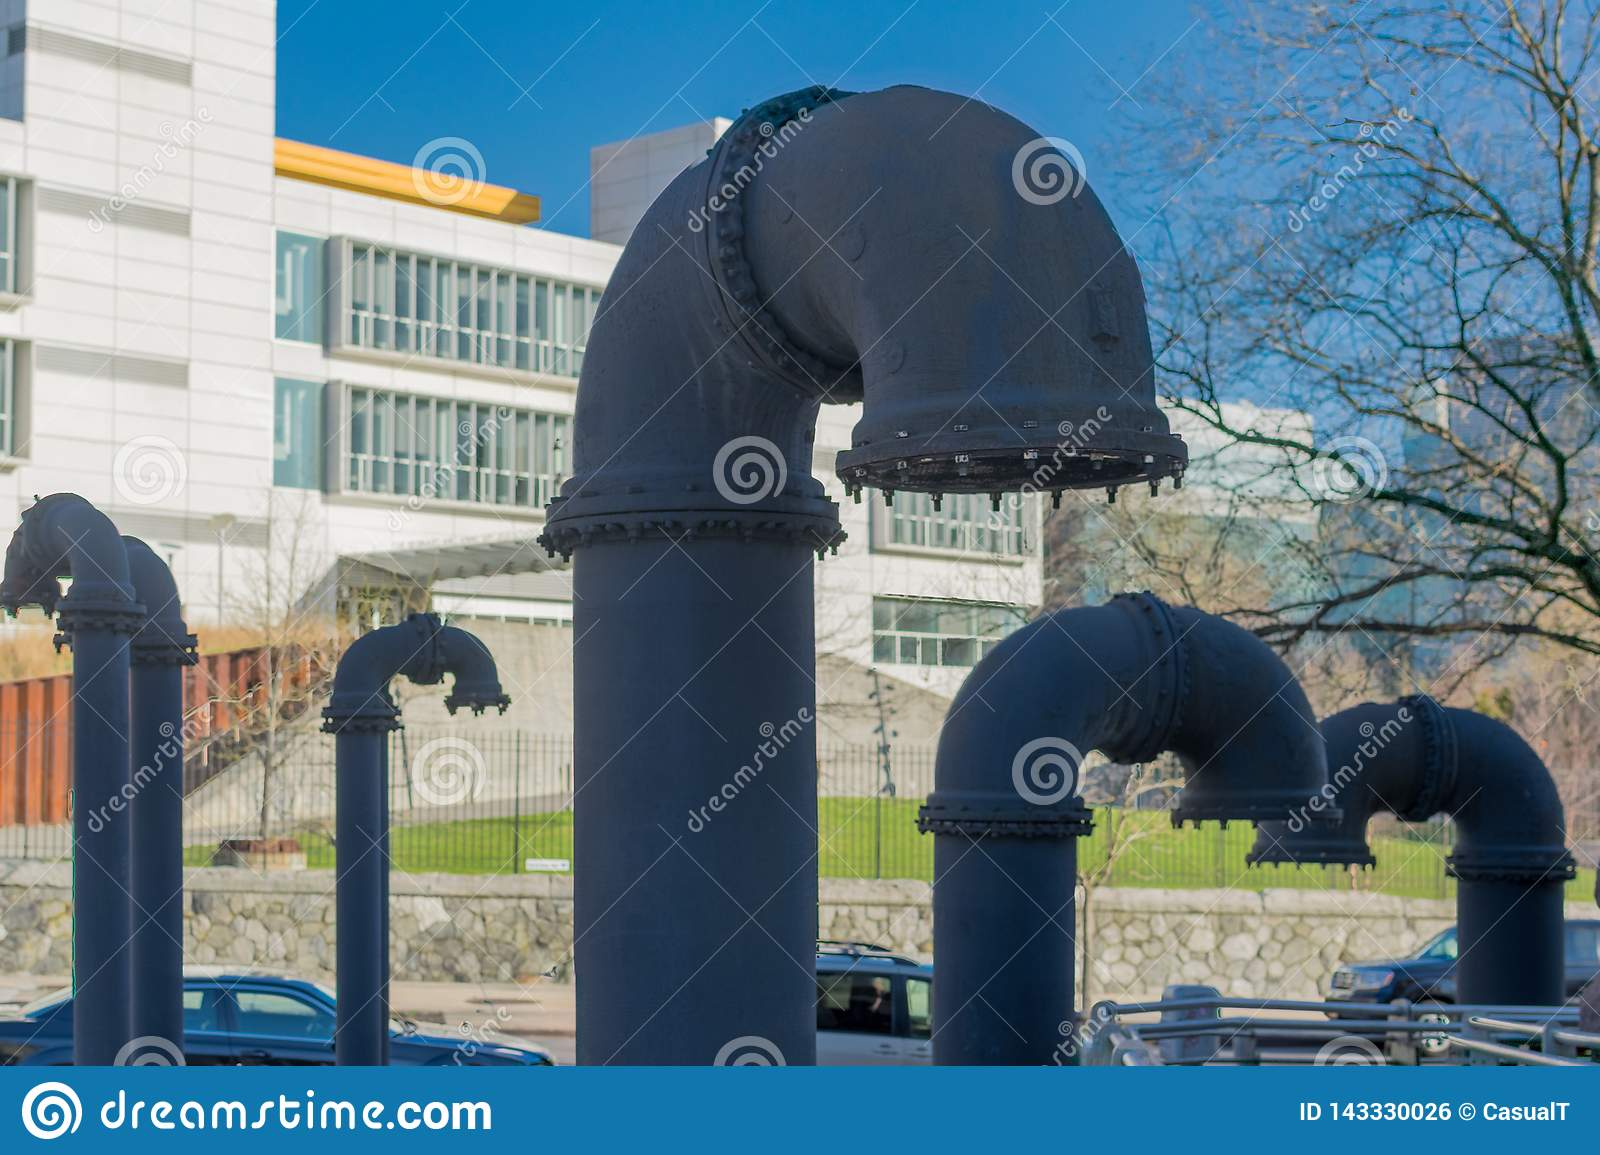 Big grey industrial pipes, sticking out of the ground